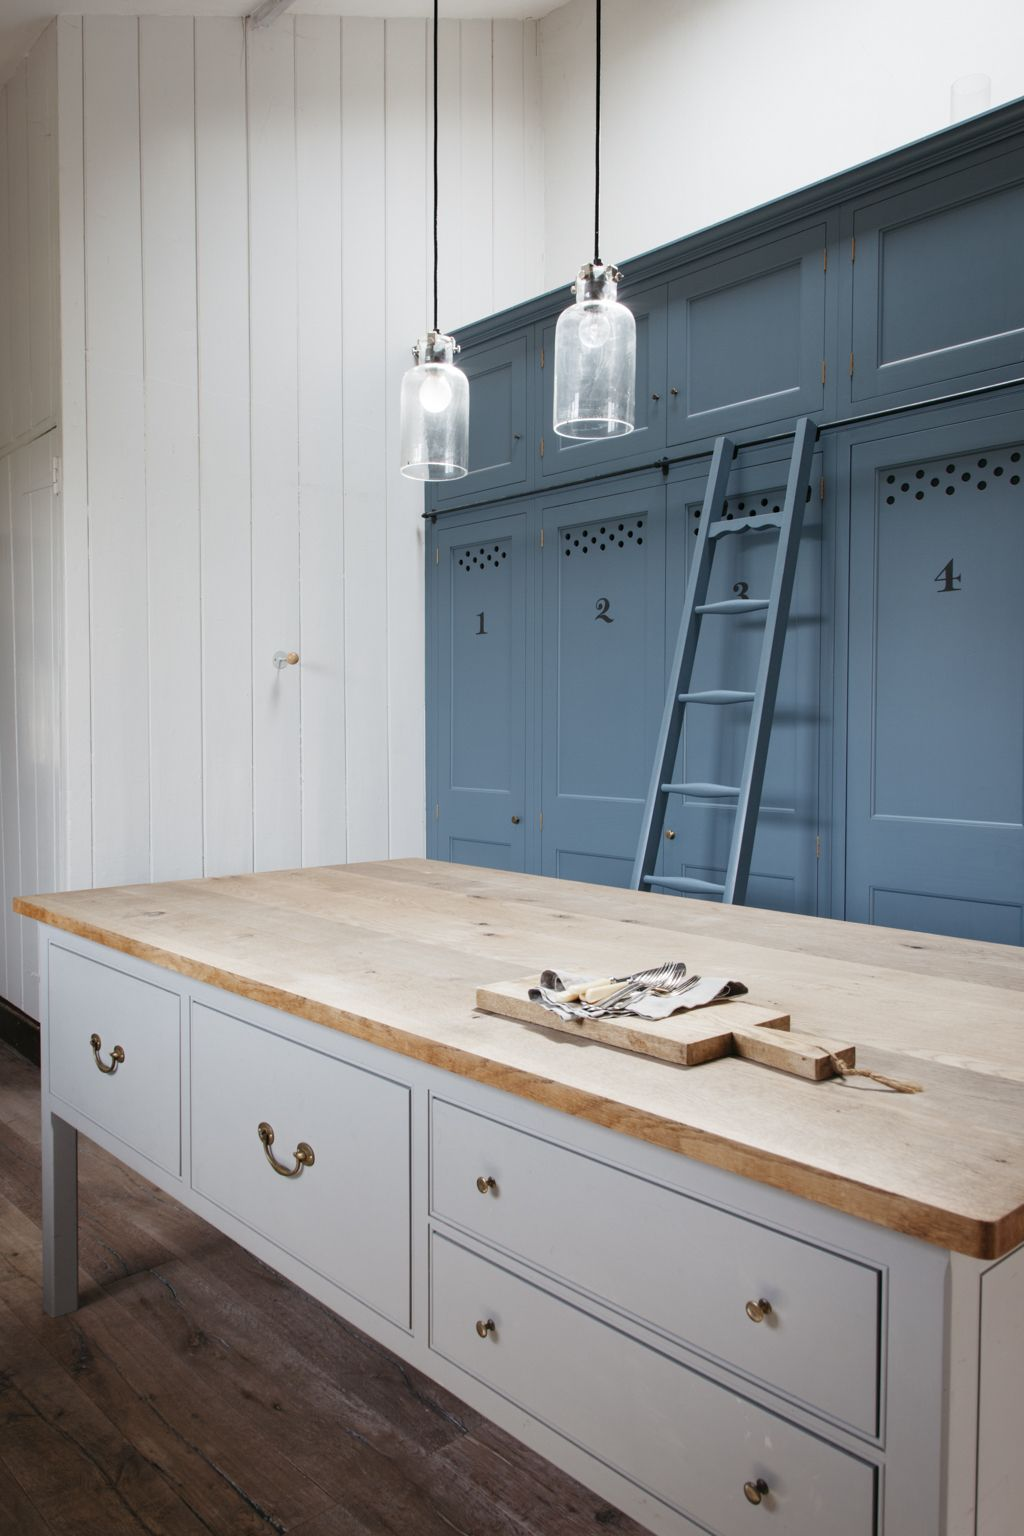 Kitchen of the Week: The Plain English Power in Numbers Kitchen - Remodelista #plainenglishkitchen